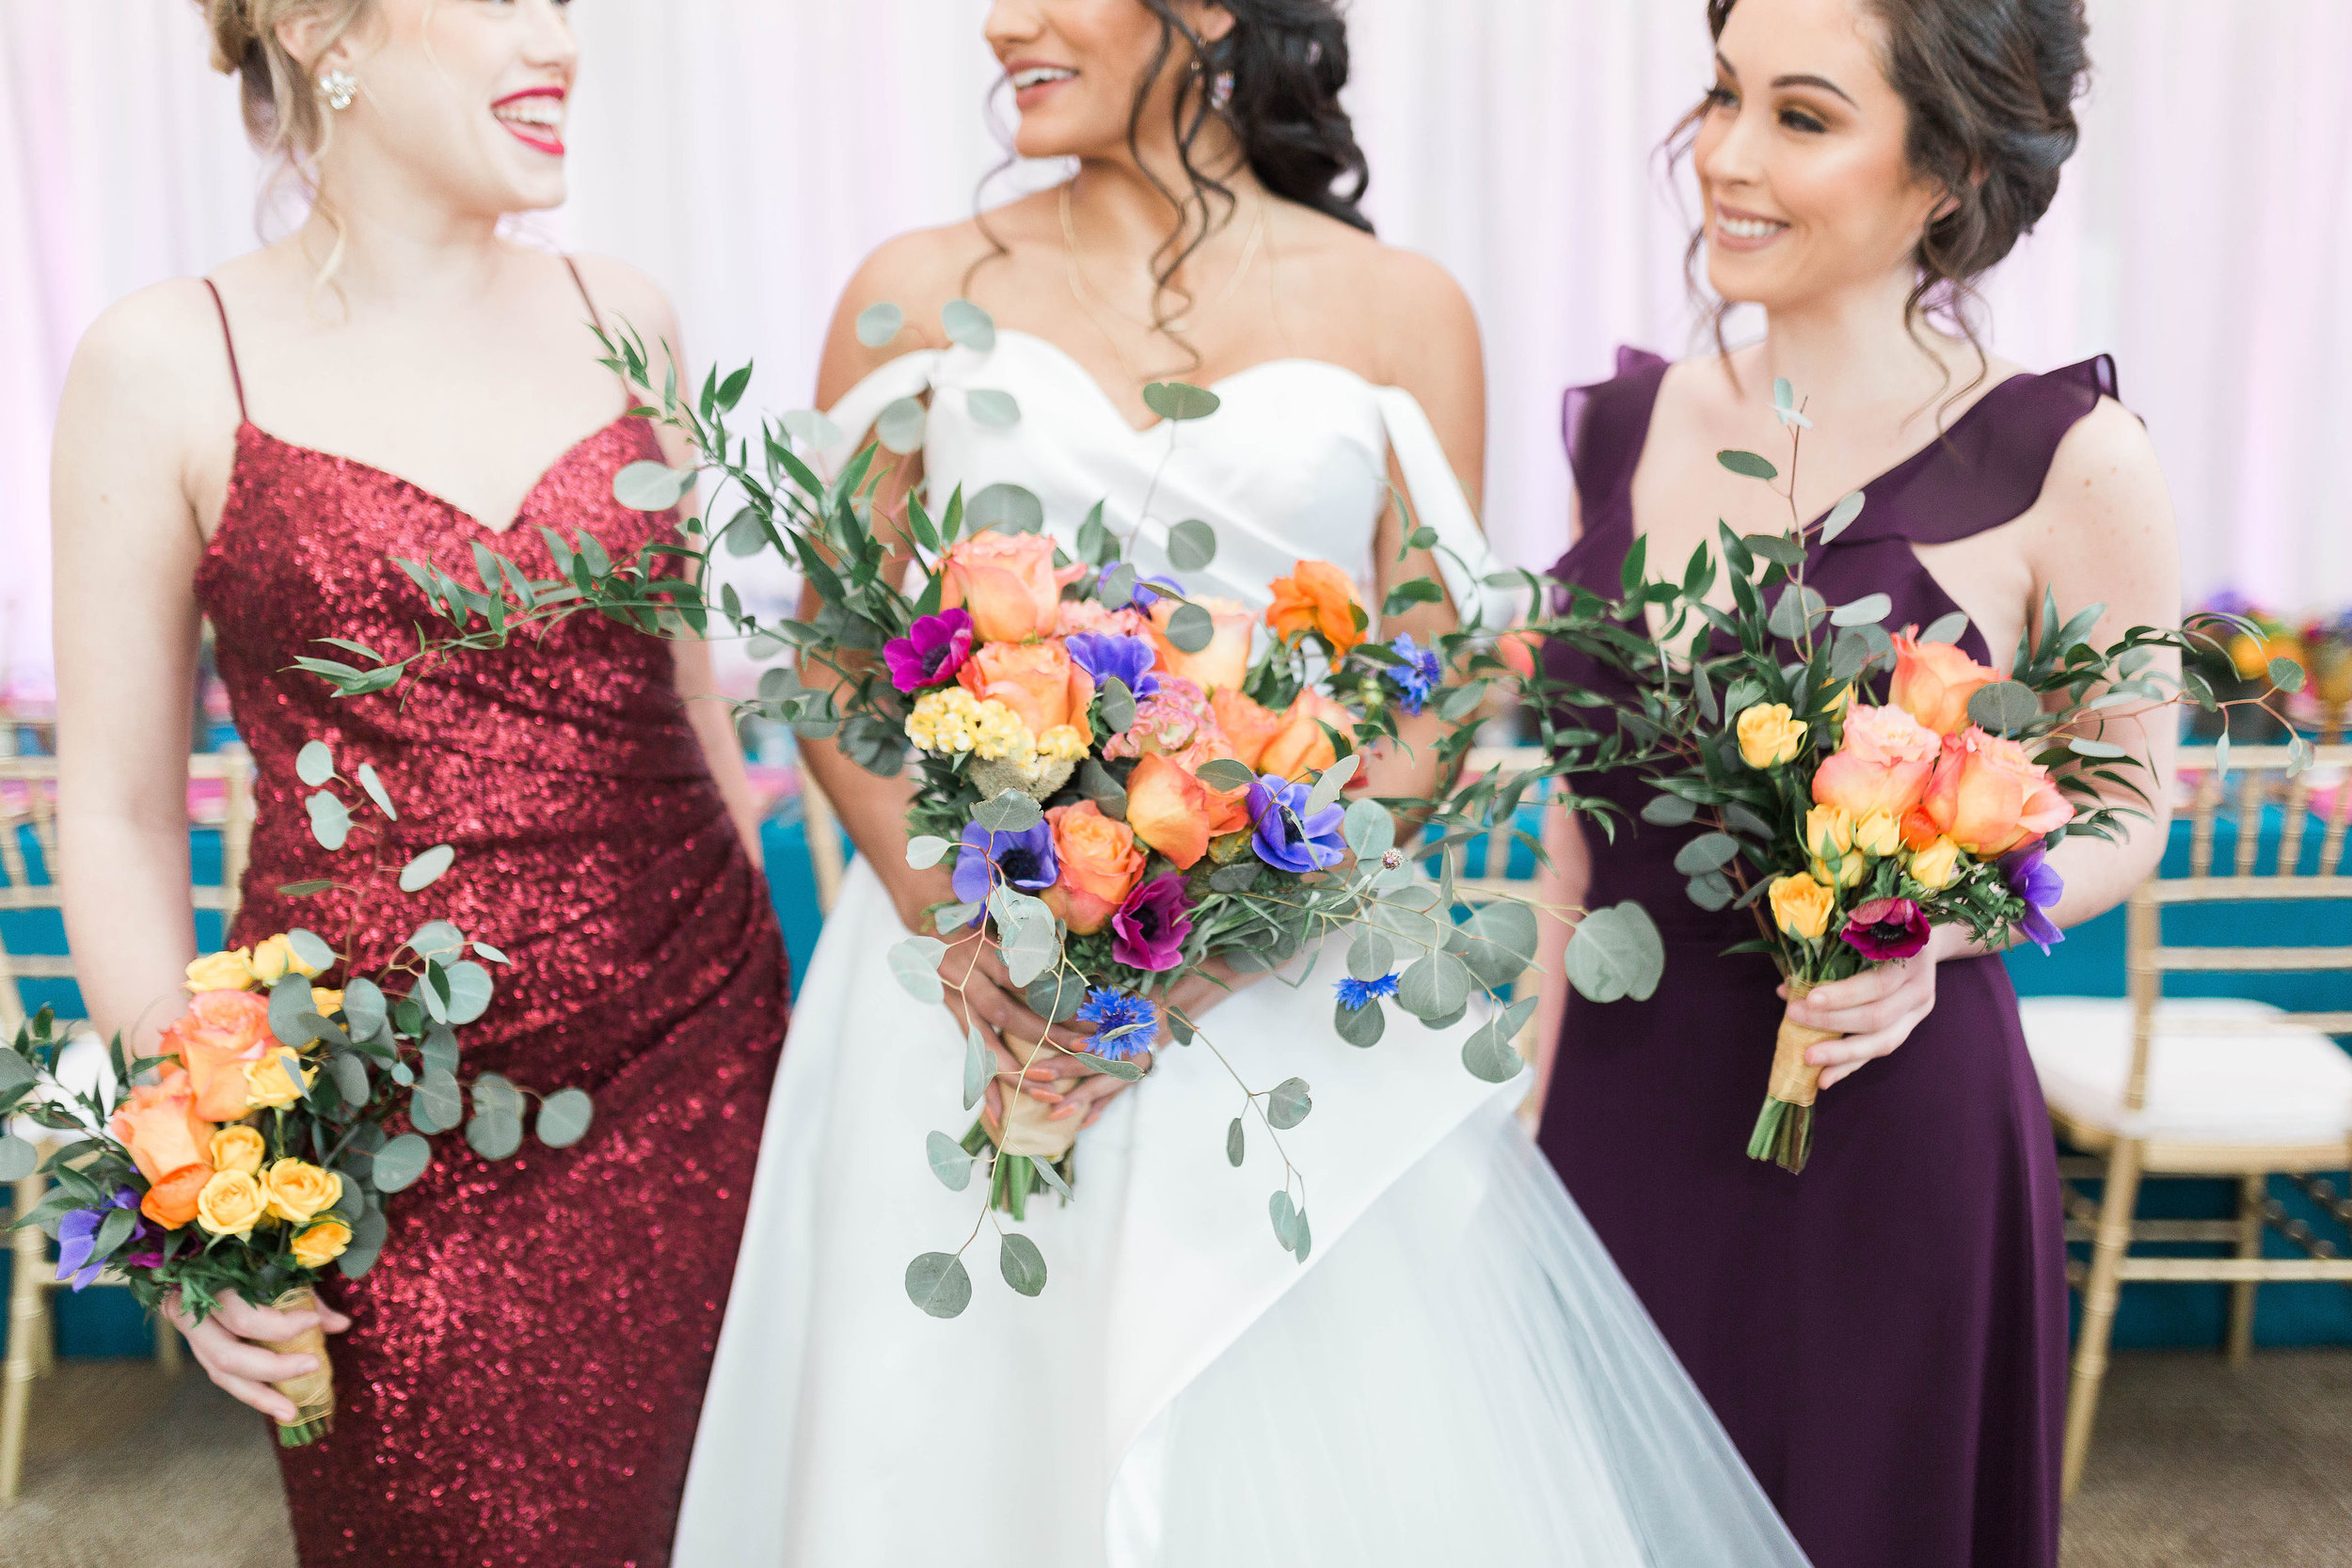 bridesmaids-daytonbride